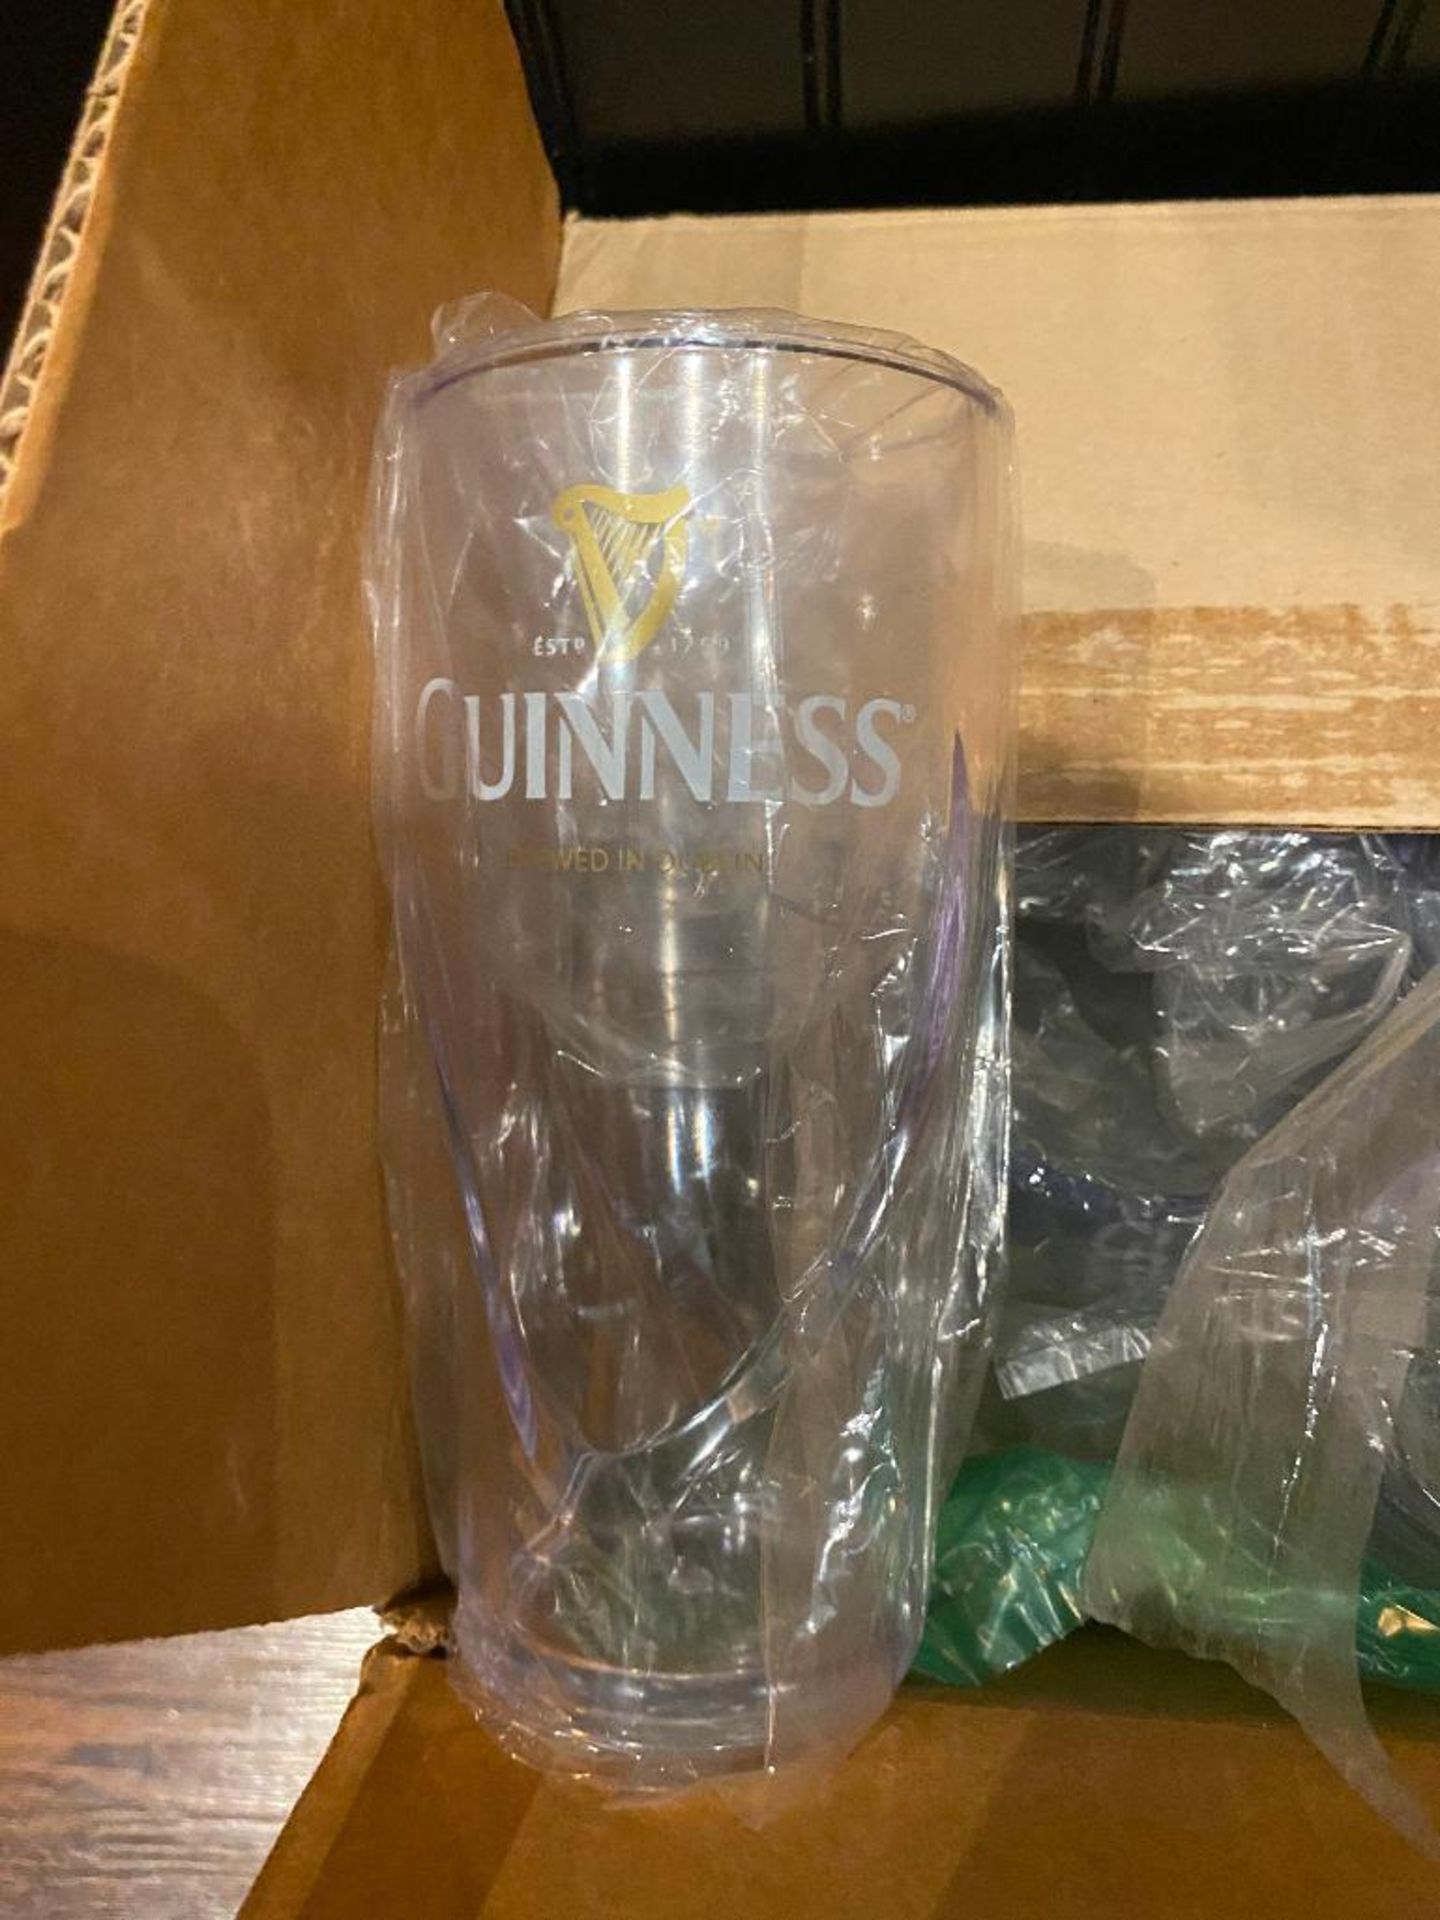 LOT OF (5) BOXES OF 12 OZ PLASTIC TUMBLERS & (2) BOXES OF PLASTIC GUINNESS GLASSES - Image 5 of 5